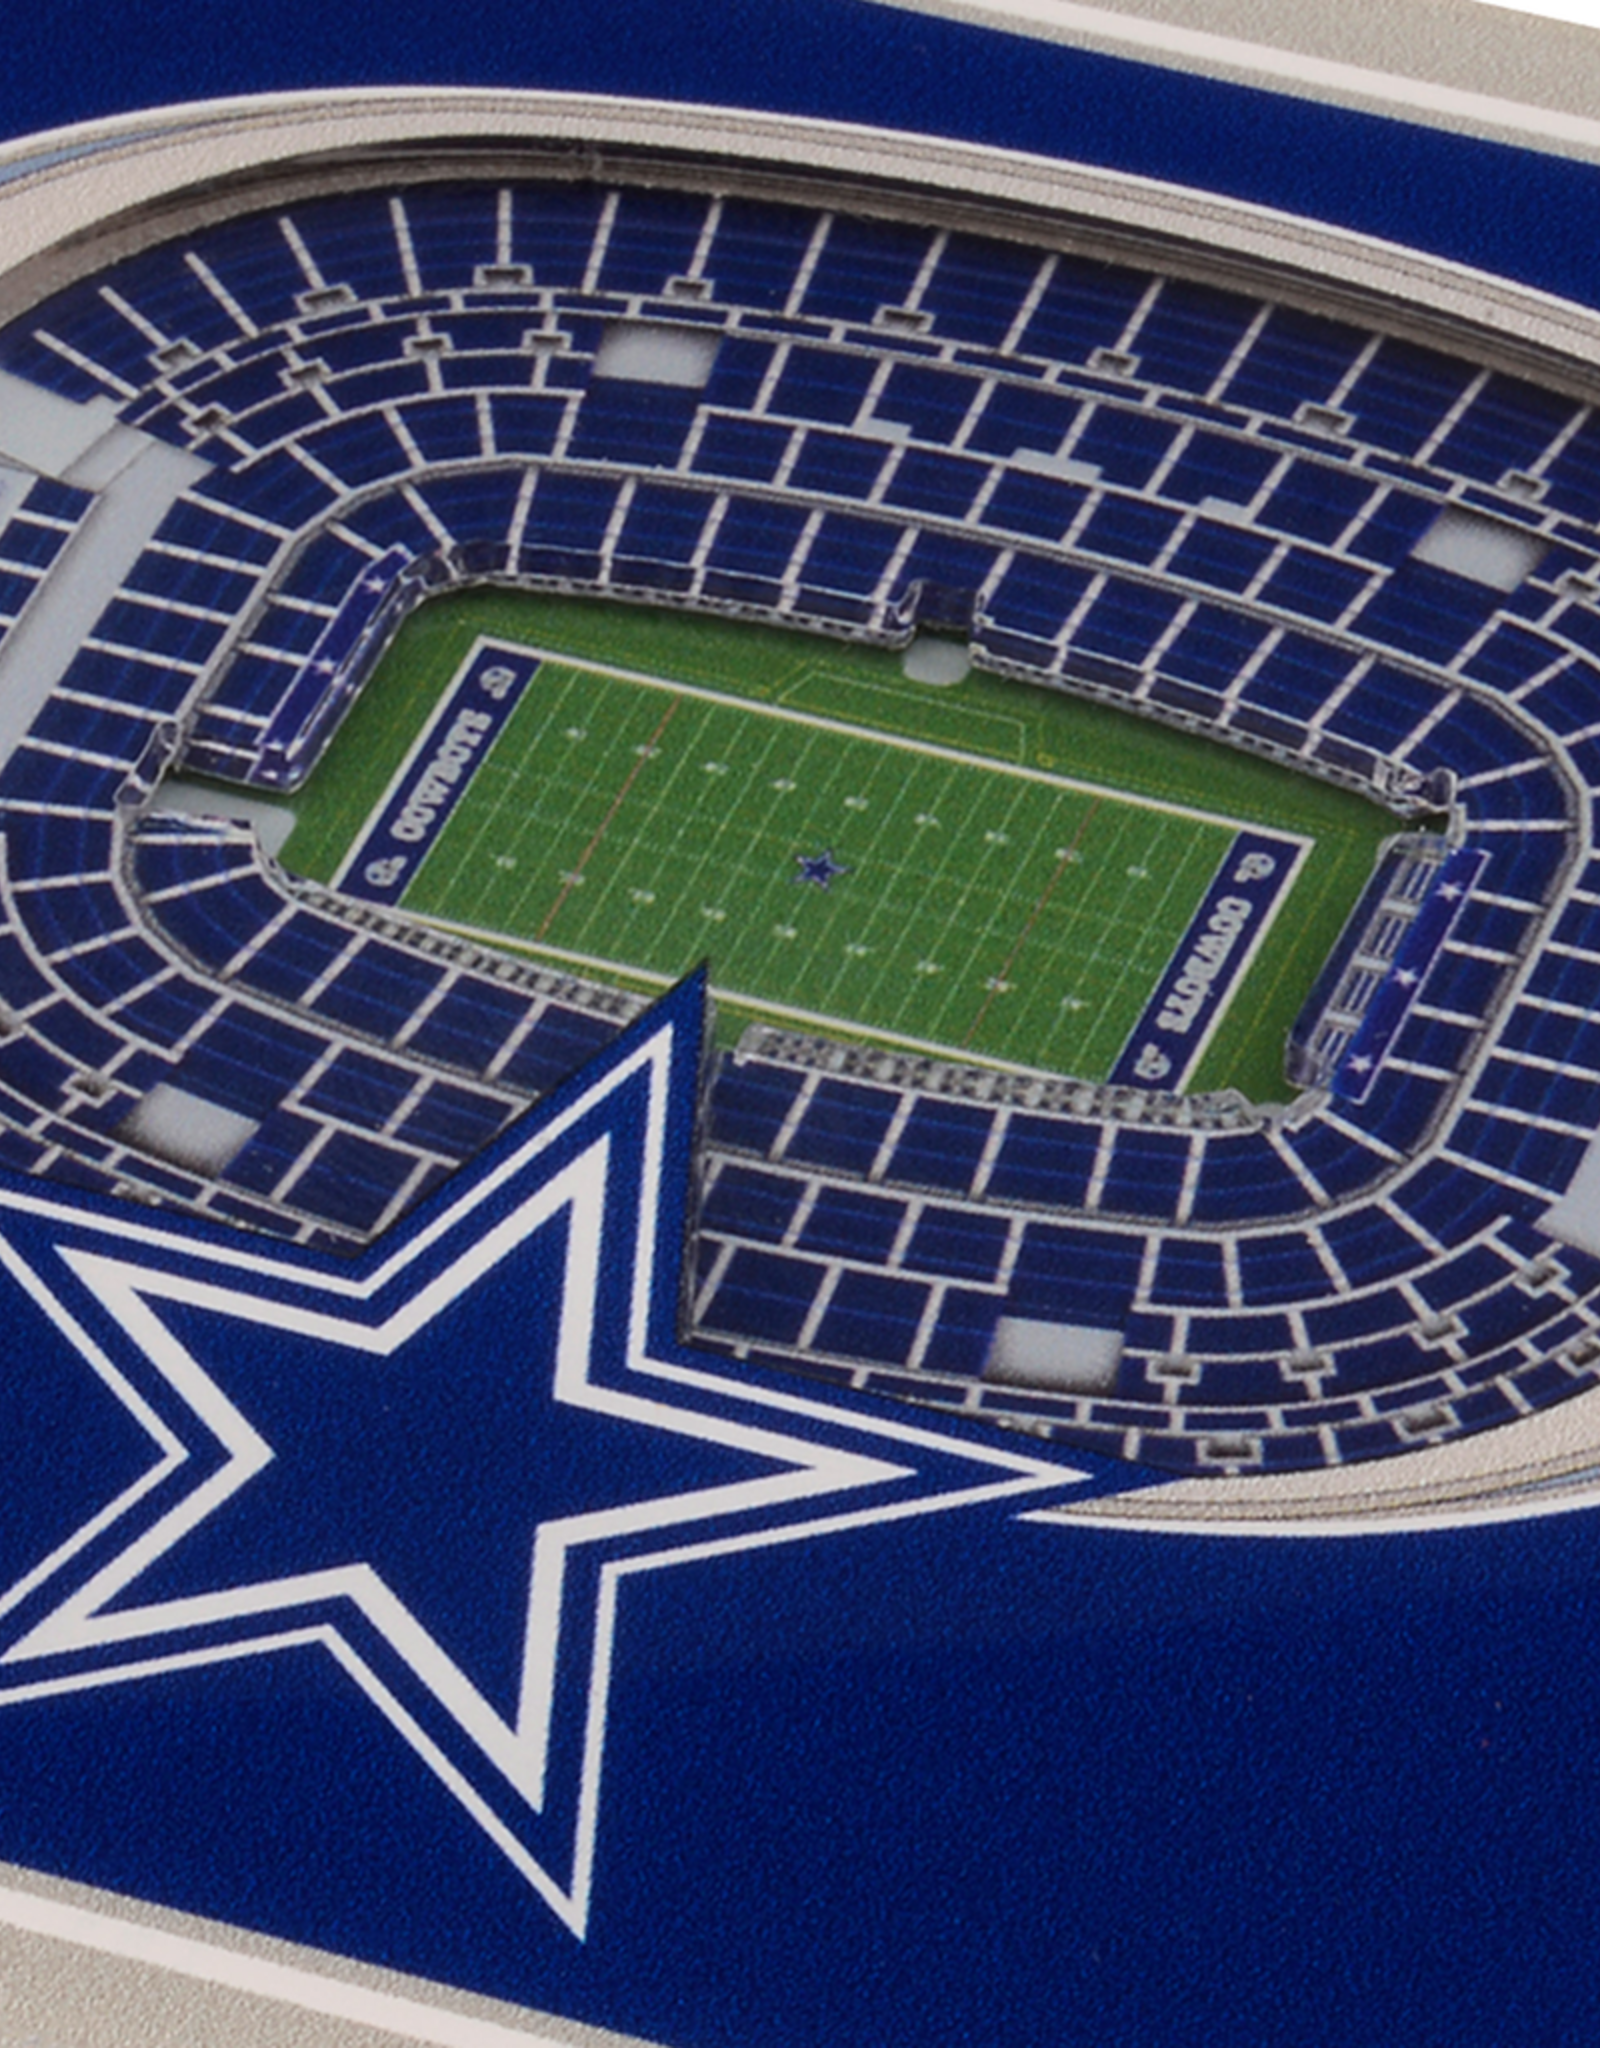 YOU THE FAN Dallas Cowboys 3-D StadiumViews Coasters 2-Pack